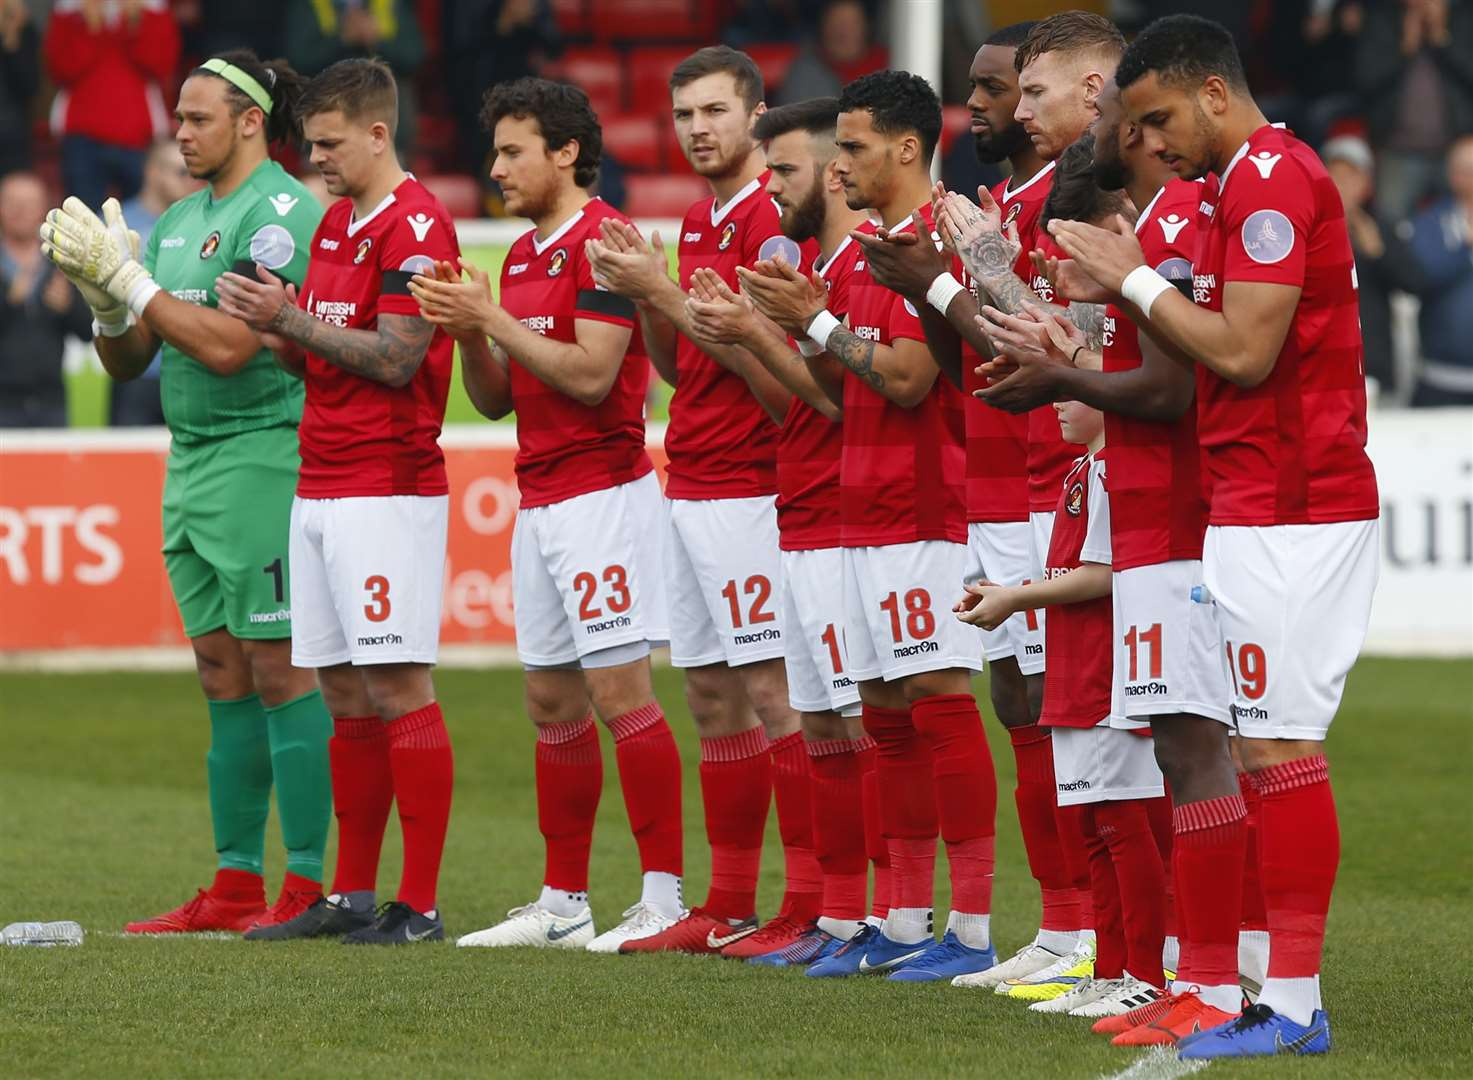 Ebbsfleet's players have not been paid on time again this month. Picture: Andy Jones